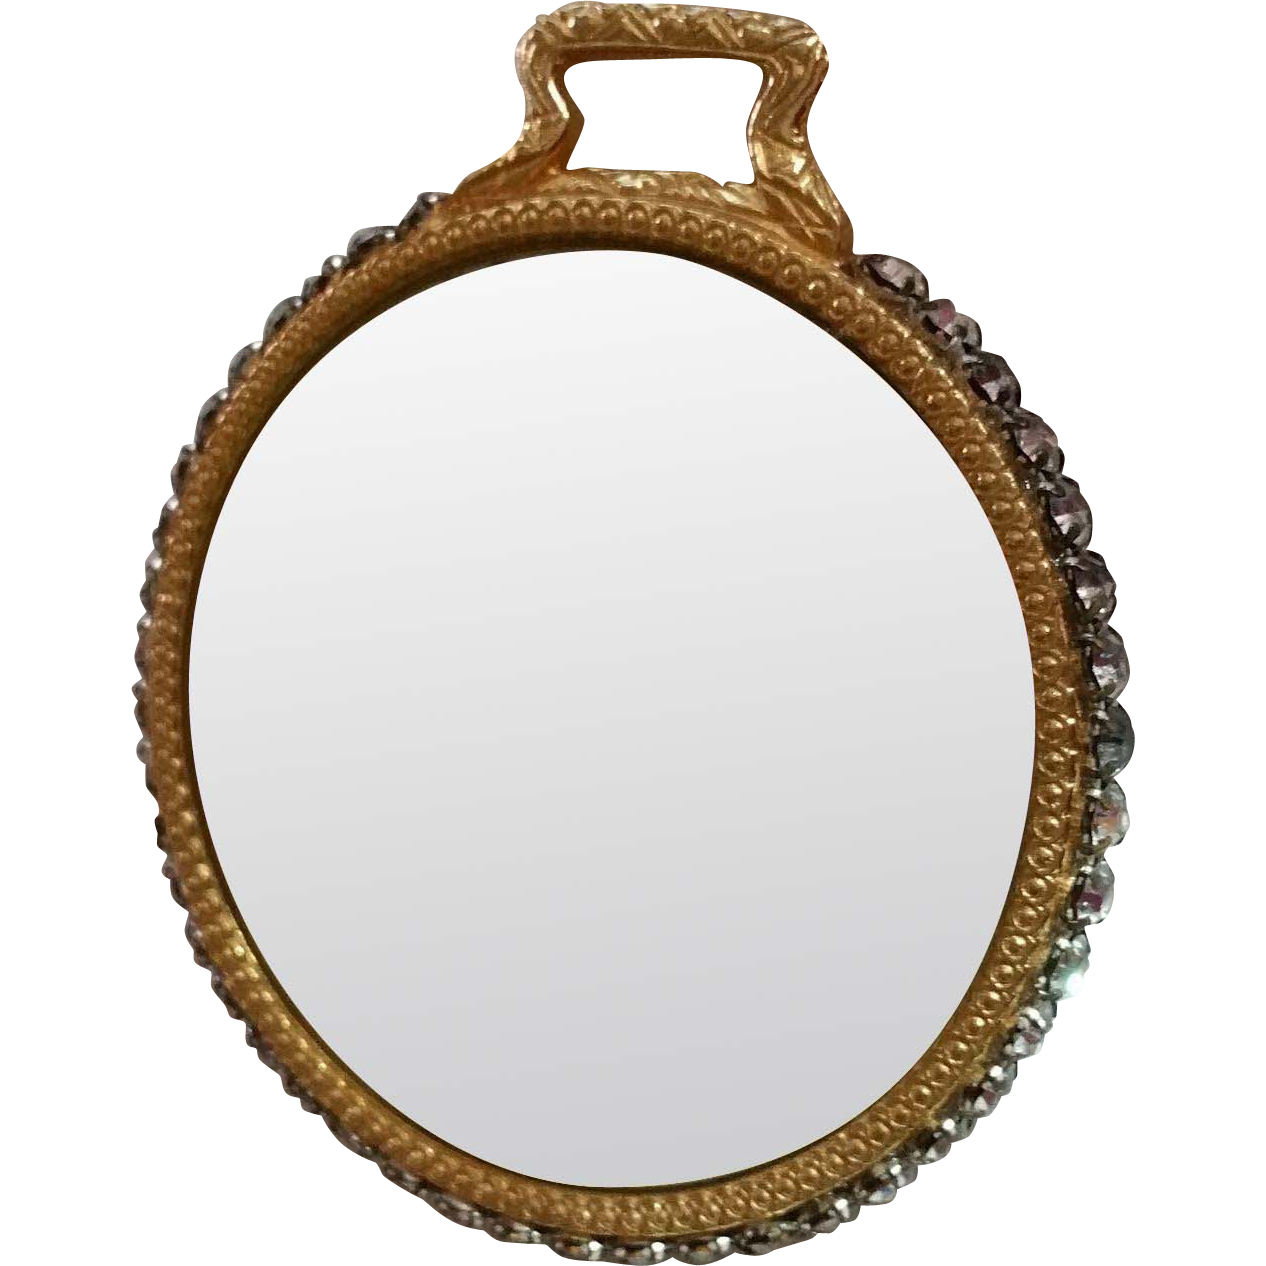 Rhinestone Adorned Hand Mirror with Beveled Edges One Side Magnifies